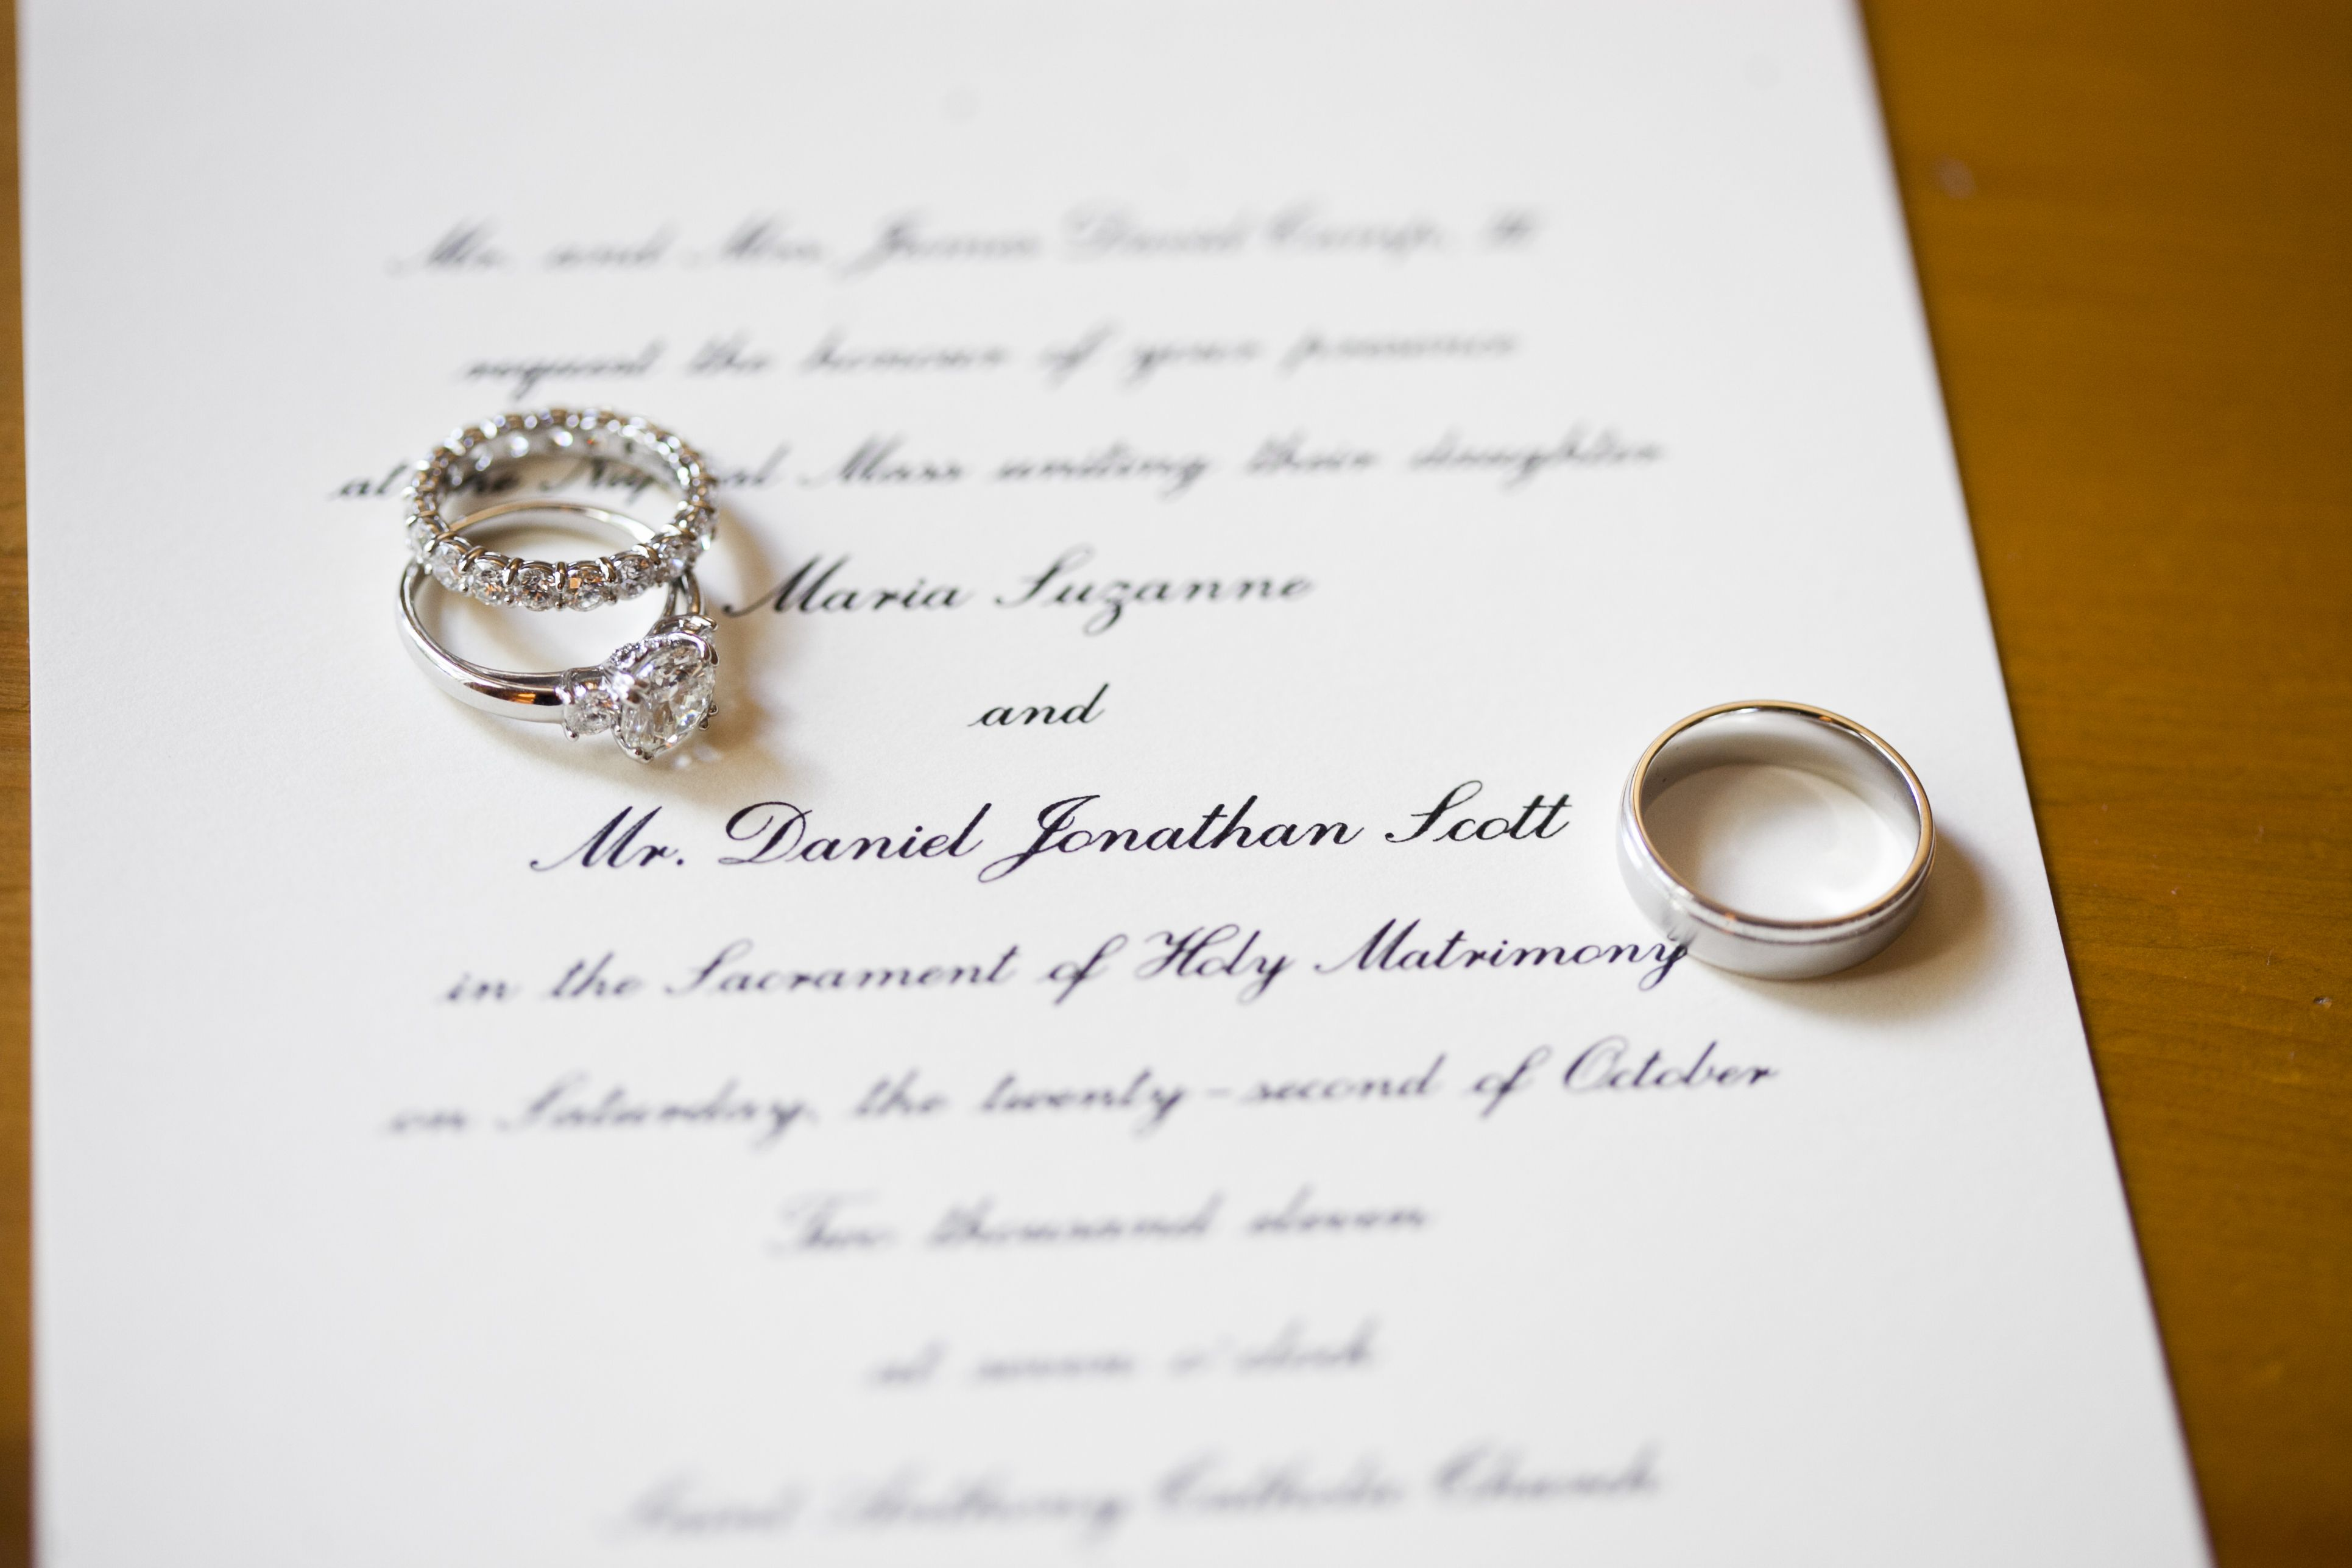 Engagement Ring And Wedding Bands Staged On The Invitation Wedding